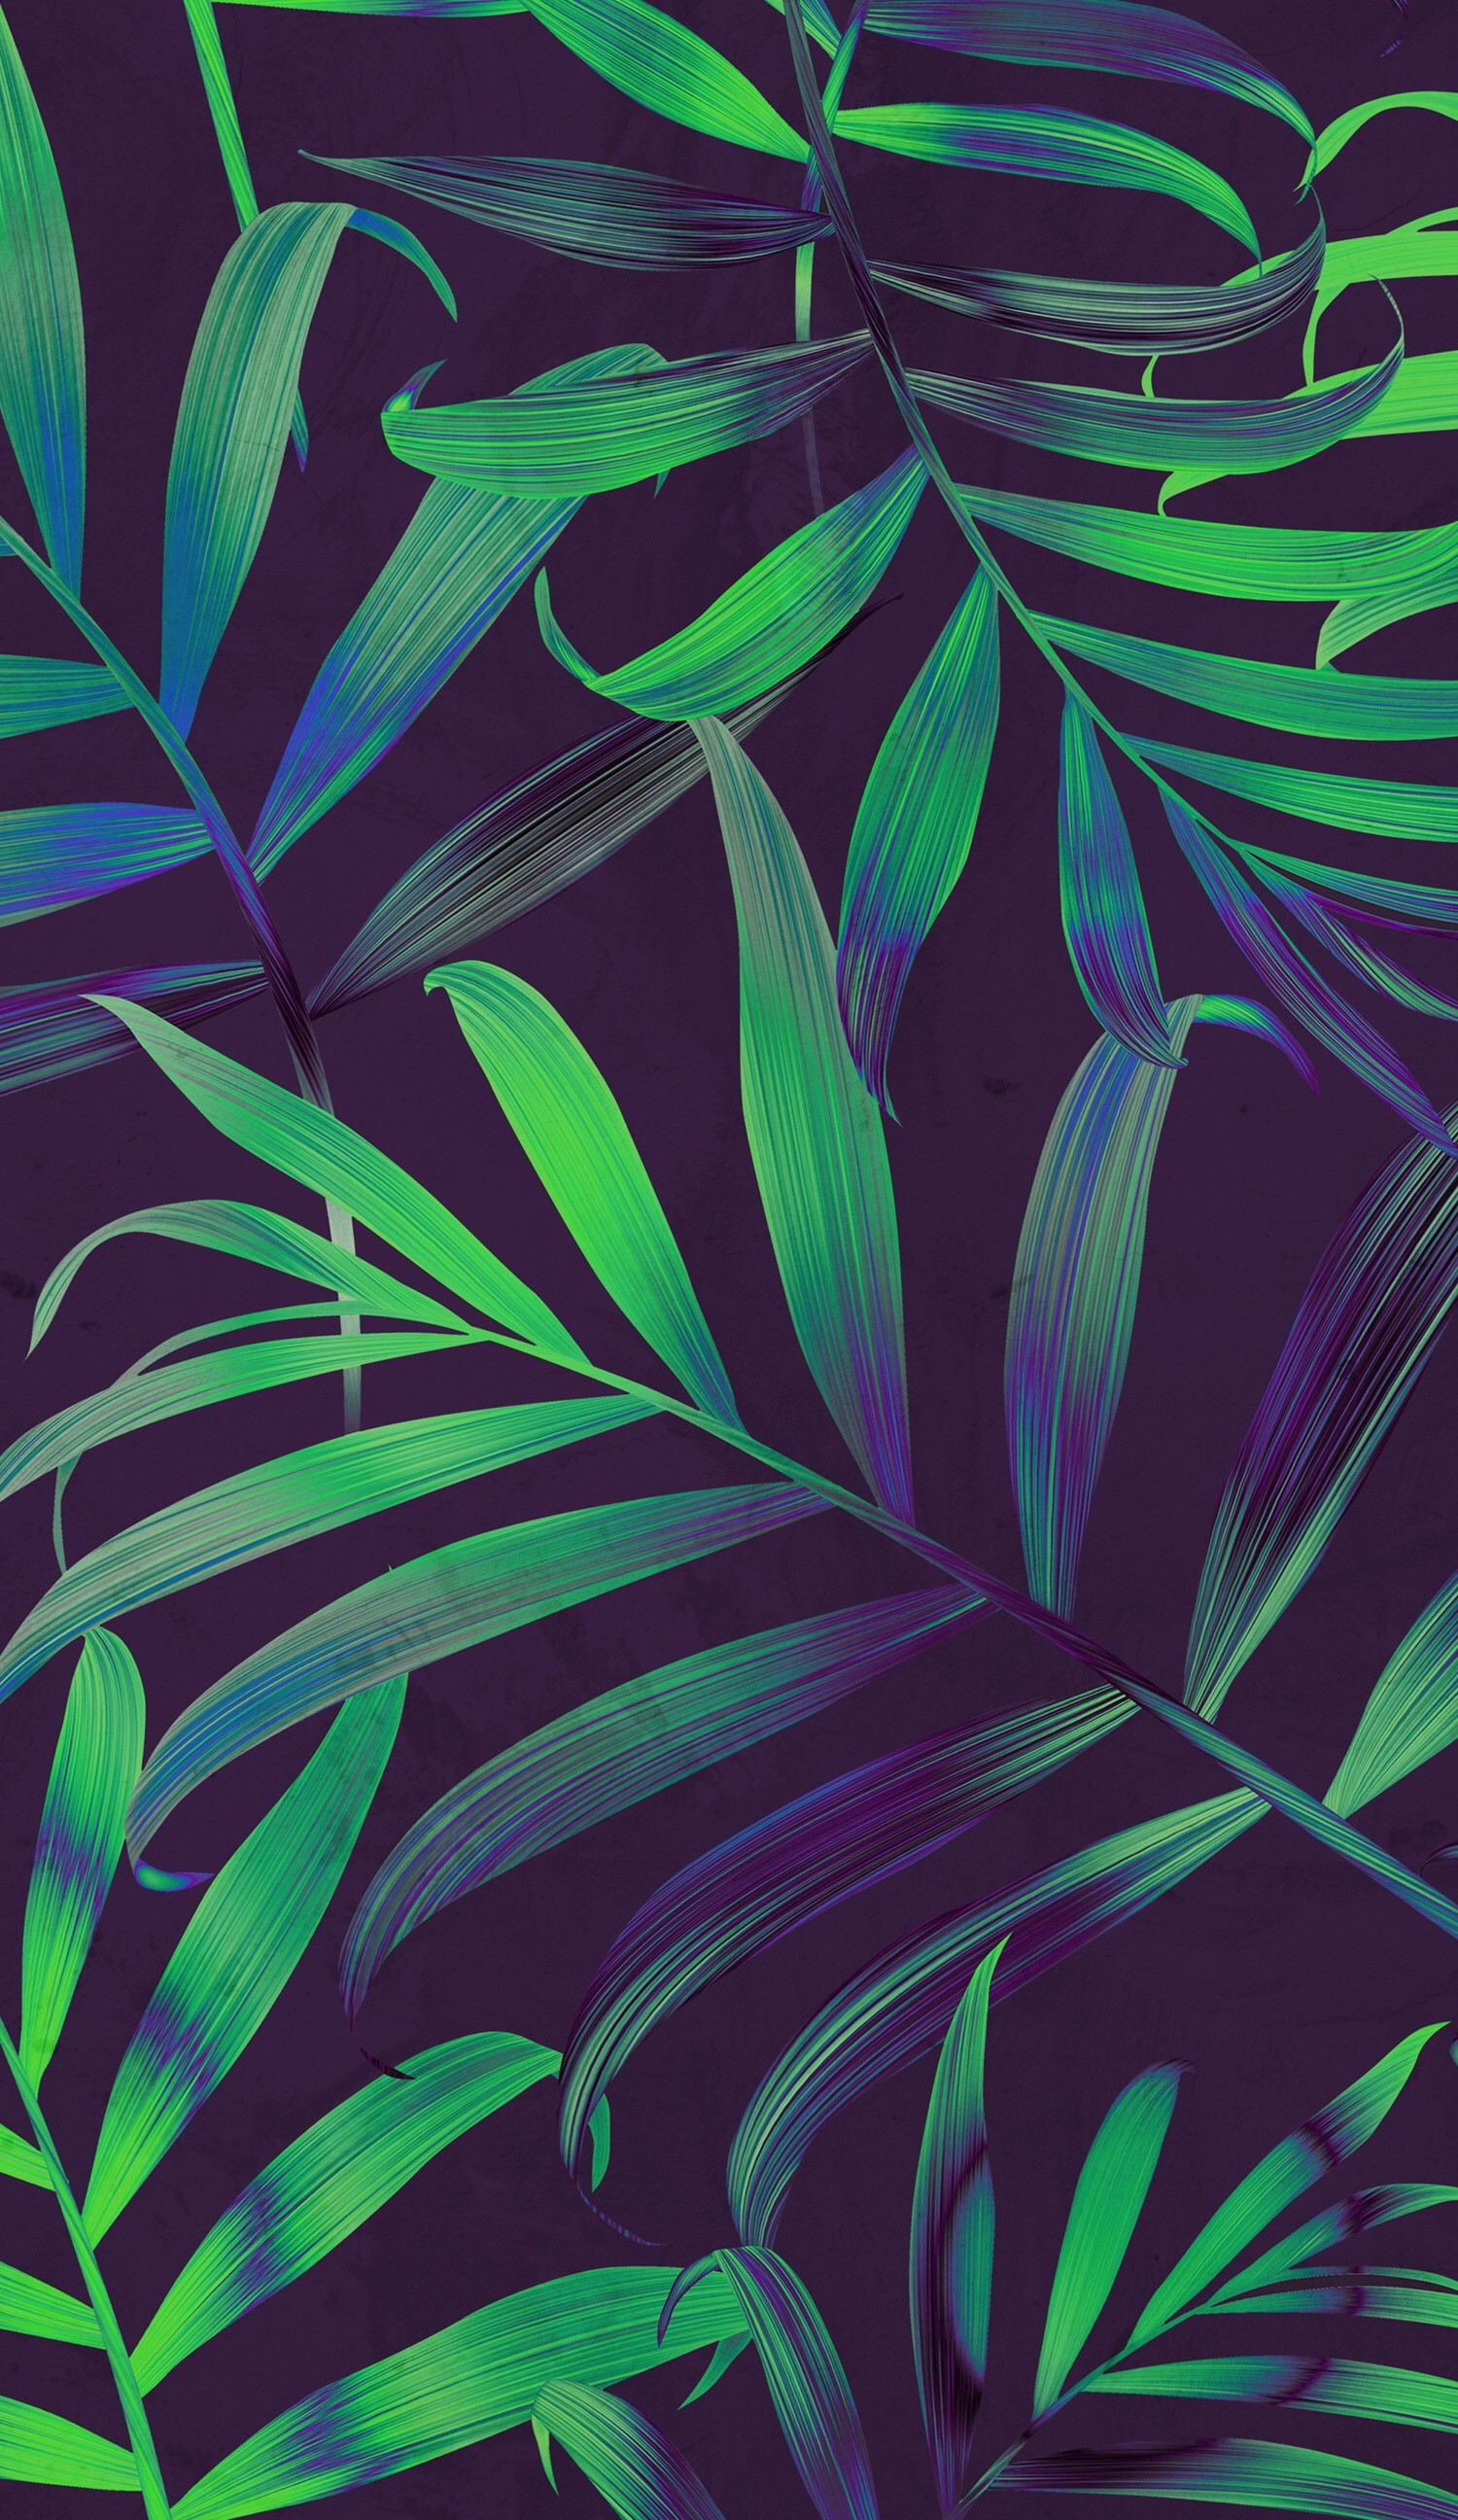 Dope Tumblr Backgrounds (83+ images)  Dope Tumblr Bac...